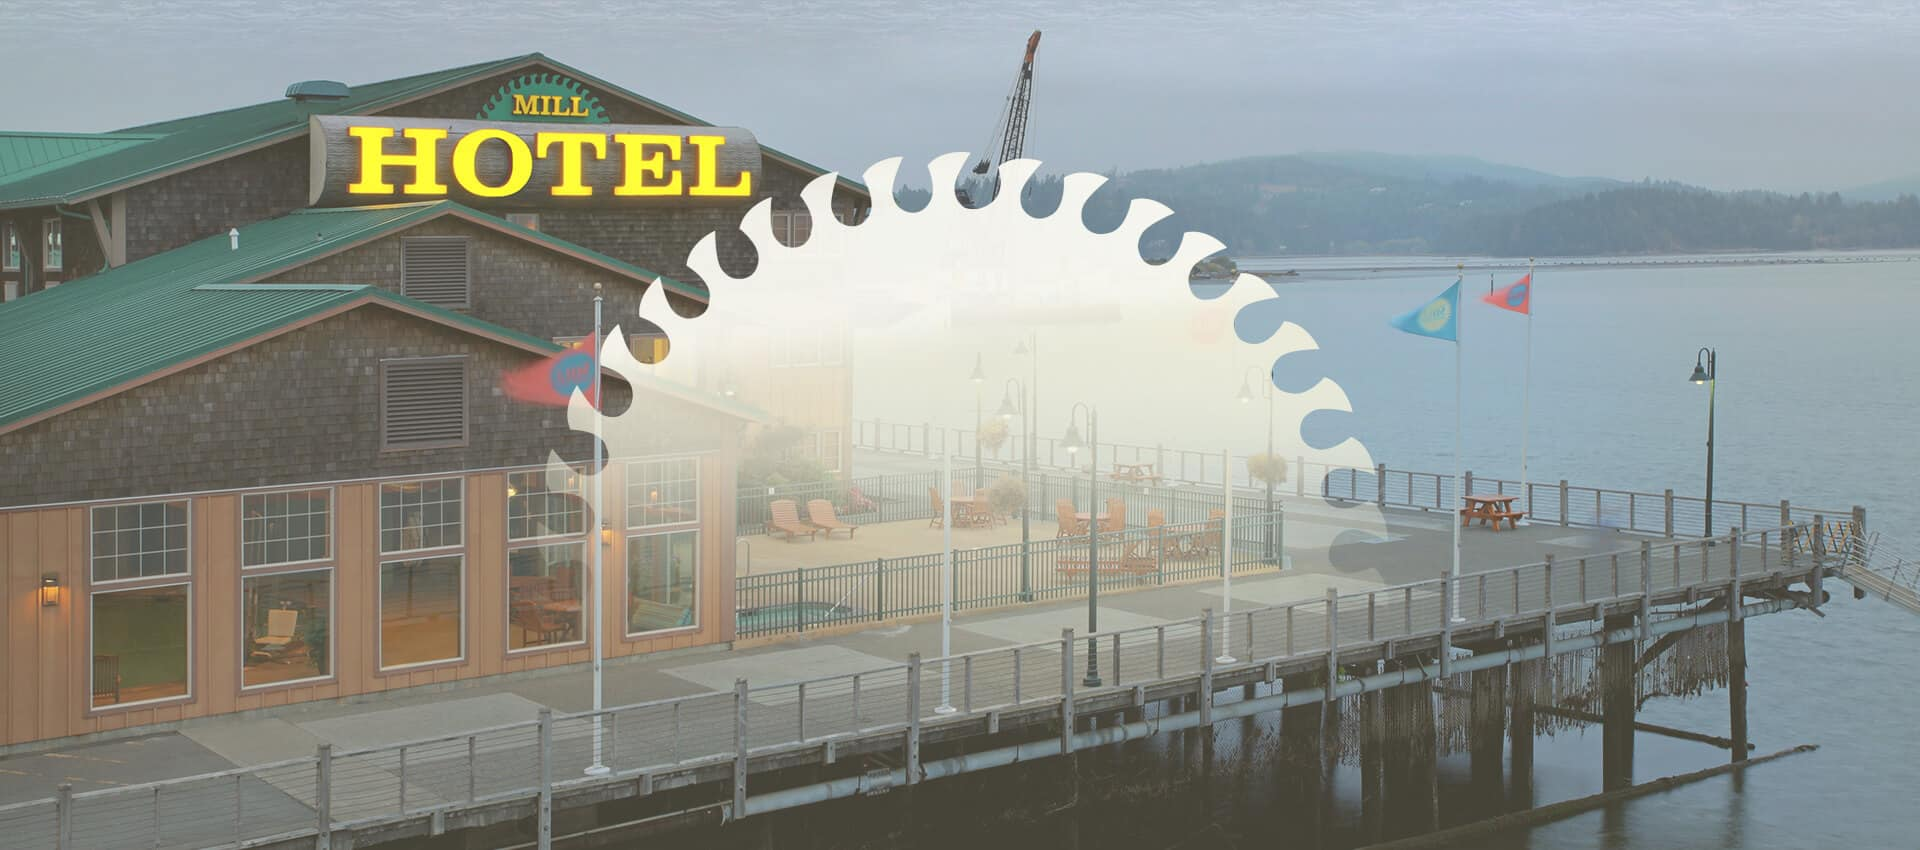 The Mill Casino exterior with Hotel sign